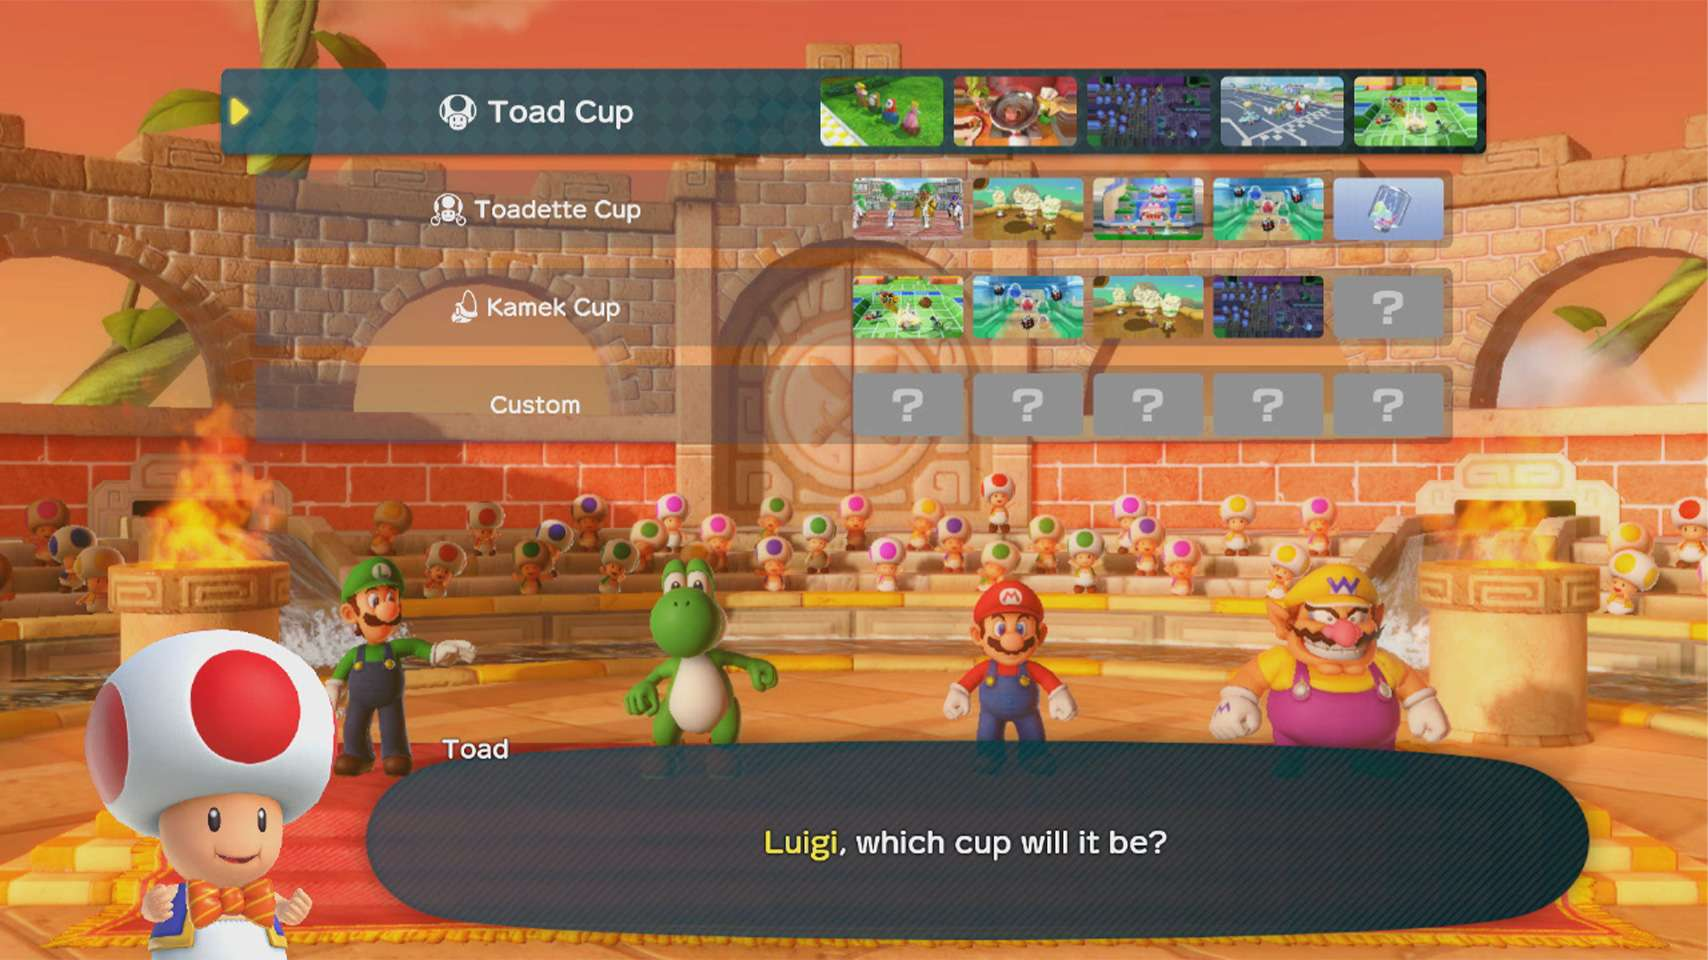 Super Mario Party Online Screenshot 1 - Super Mario Party recibe modo multijugador online